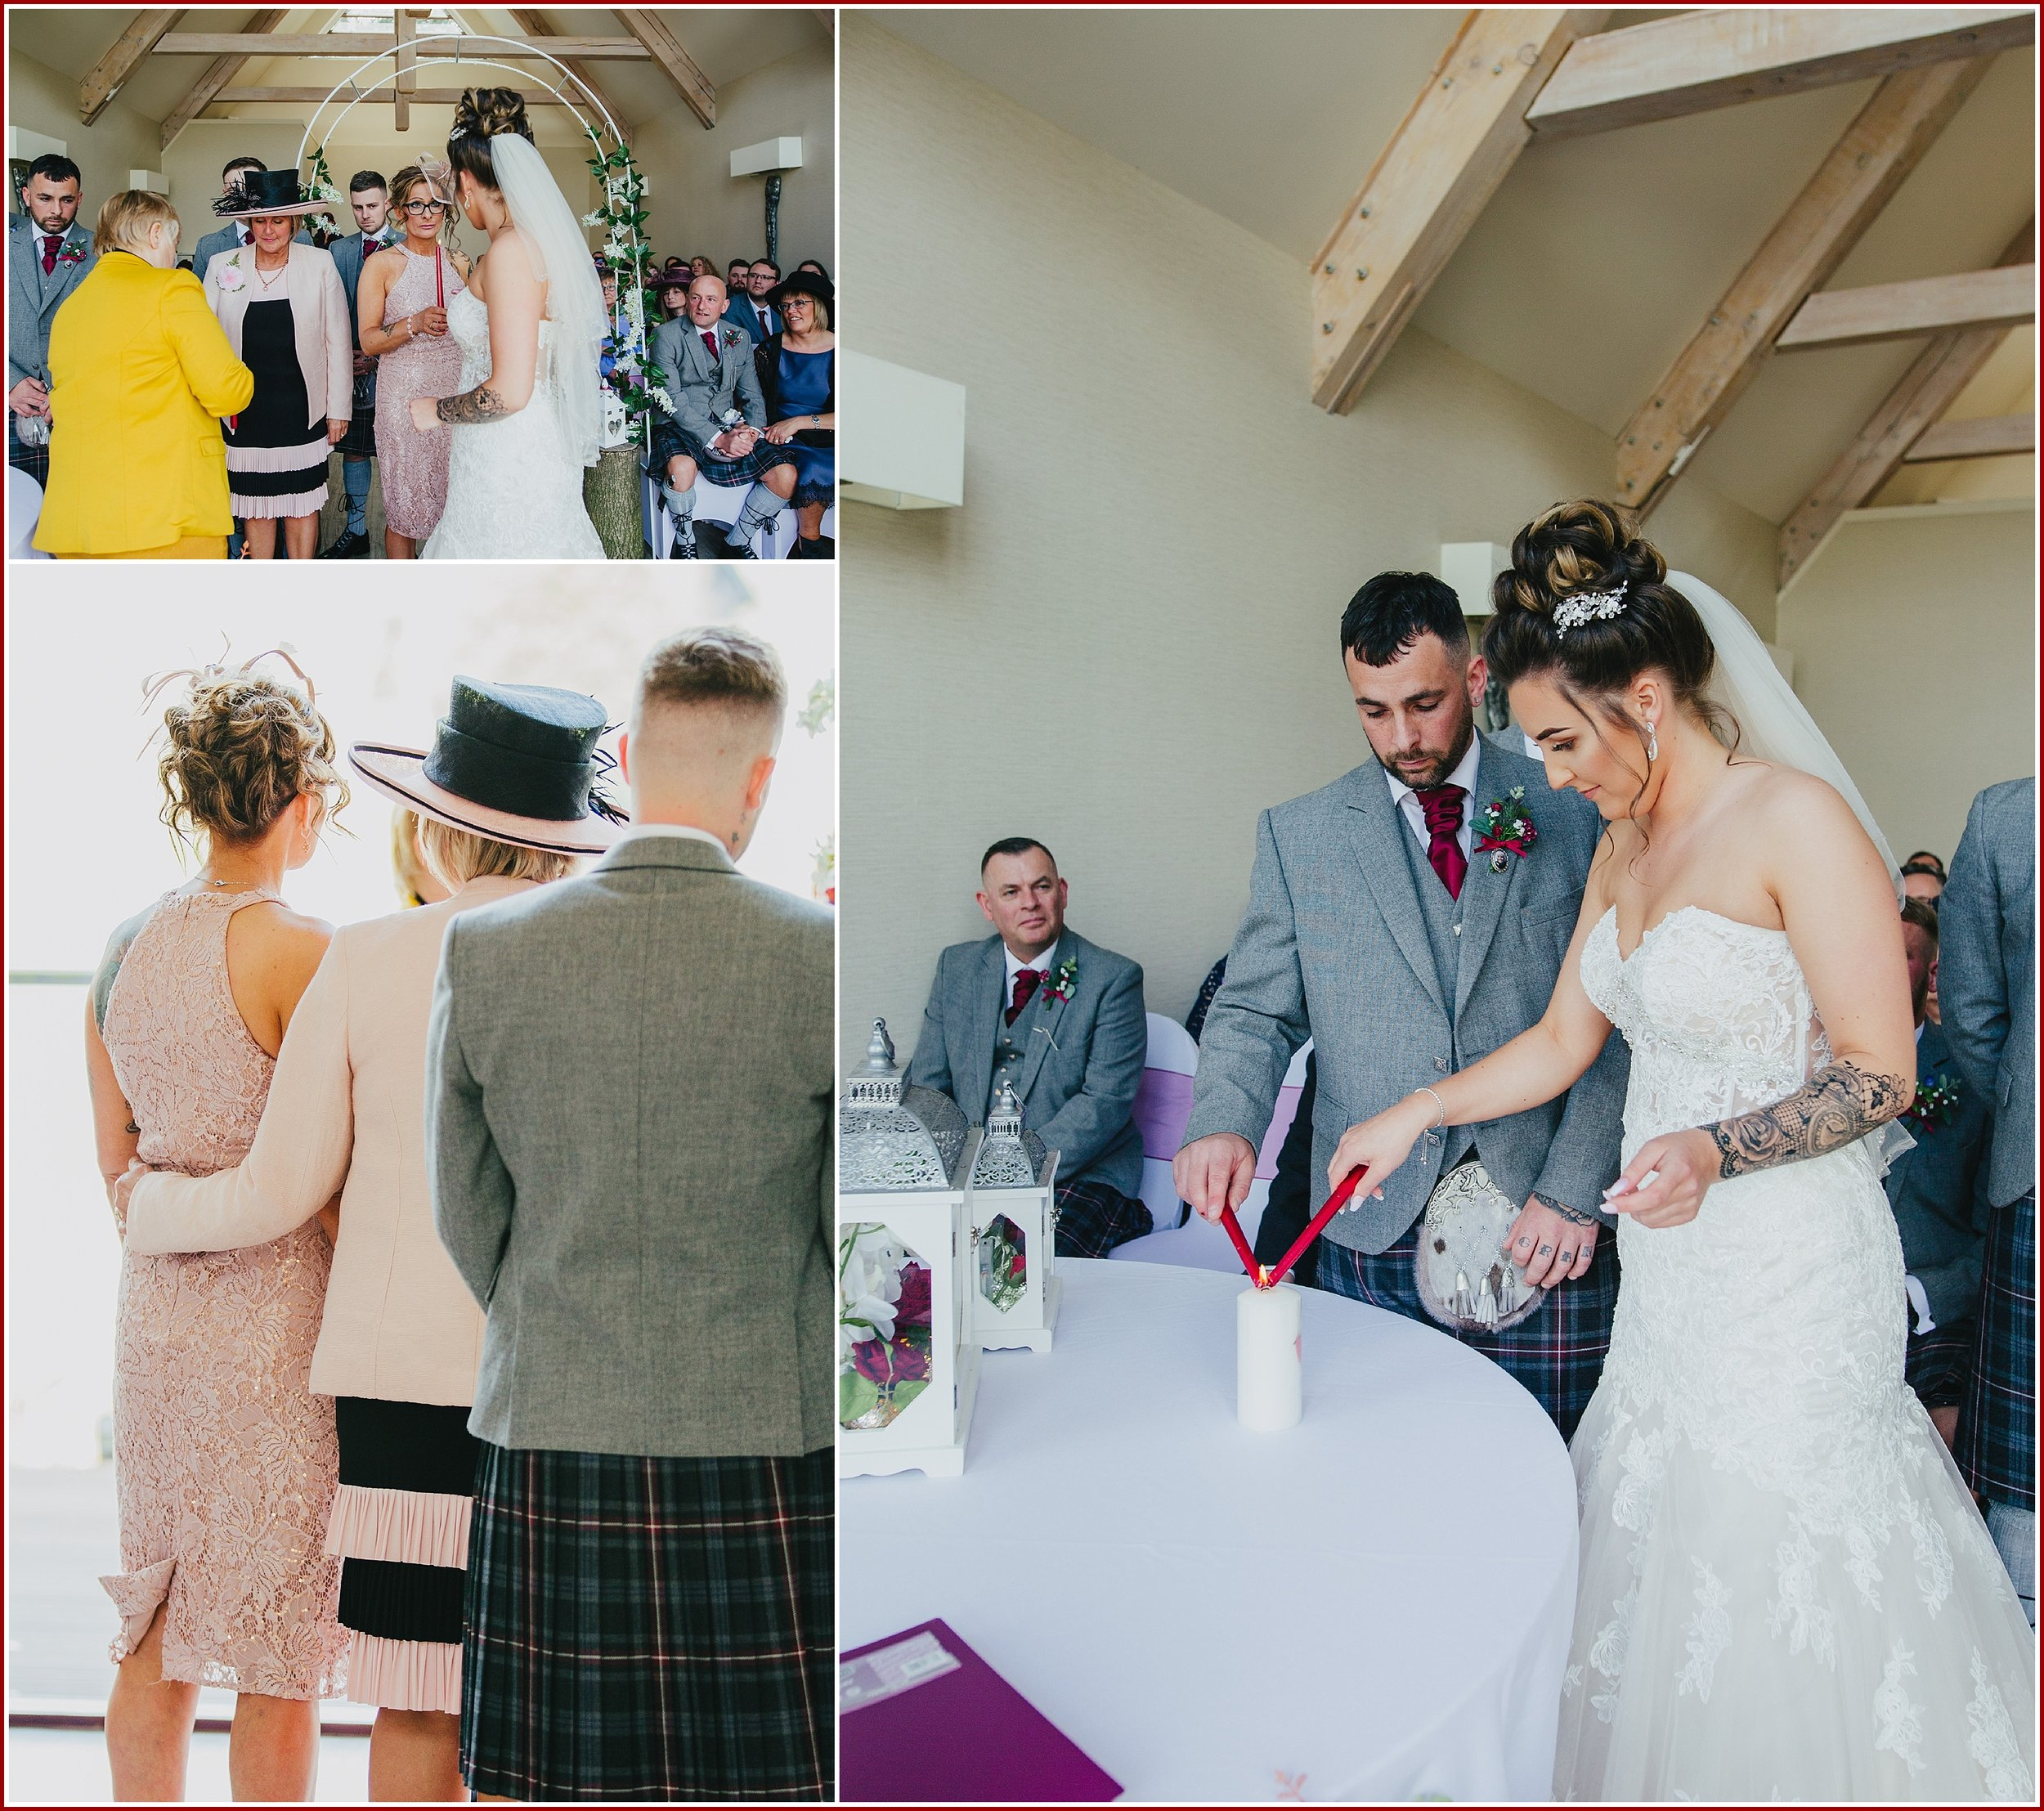 Kirsty_Brown_Wedding_Photography_0080.jpg